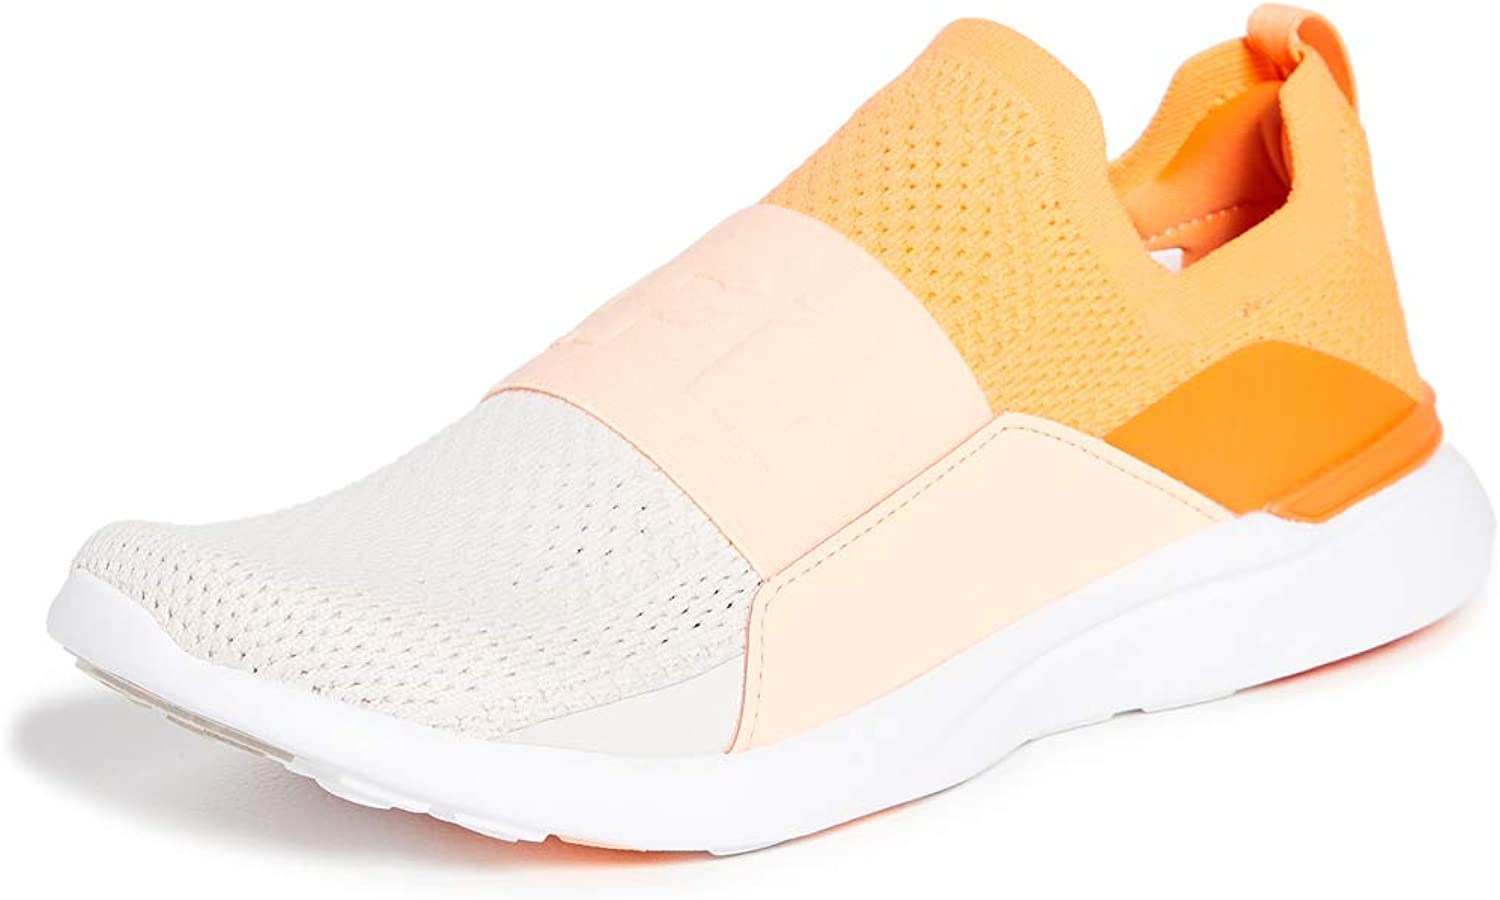 ATHLETIC PROPULSION LABS Women's Bliss Minneapolis Mall Sneakers quality assurance Techloom